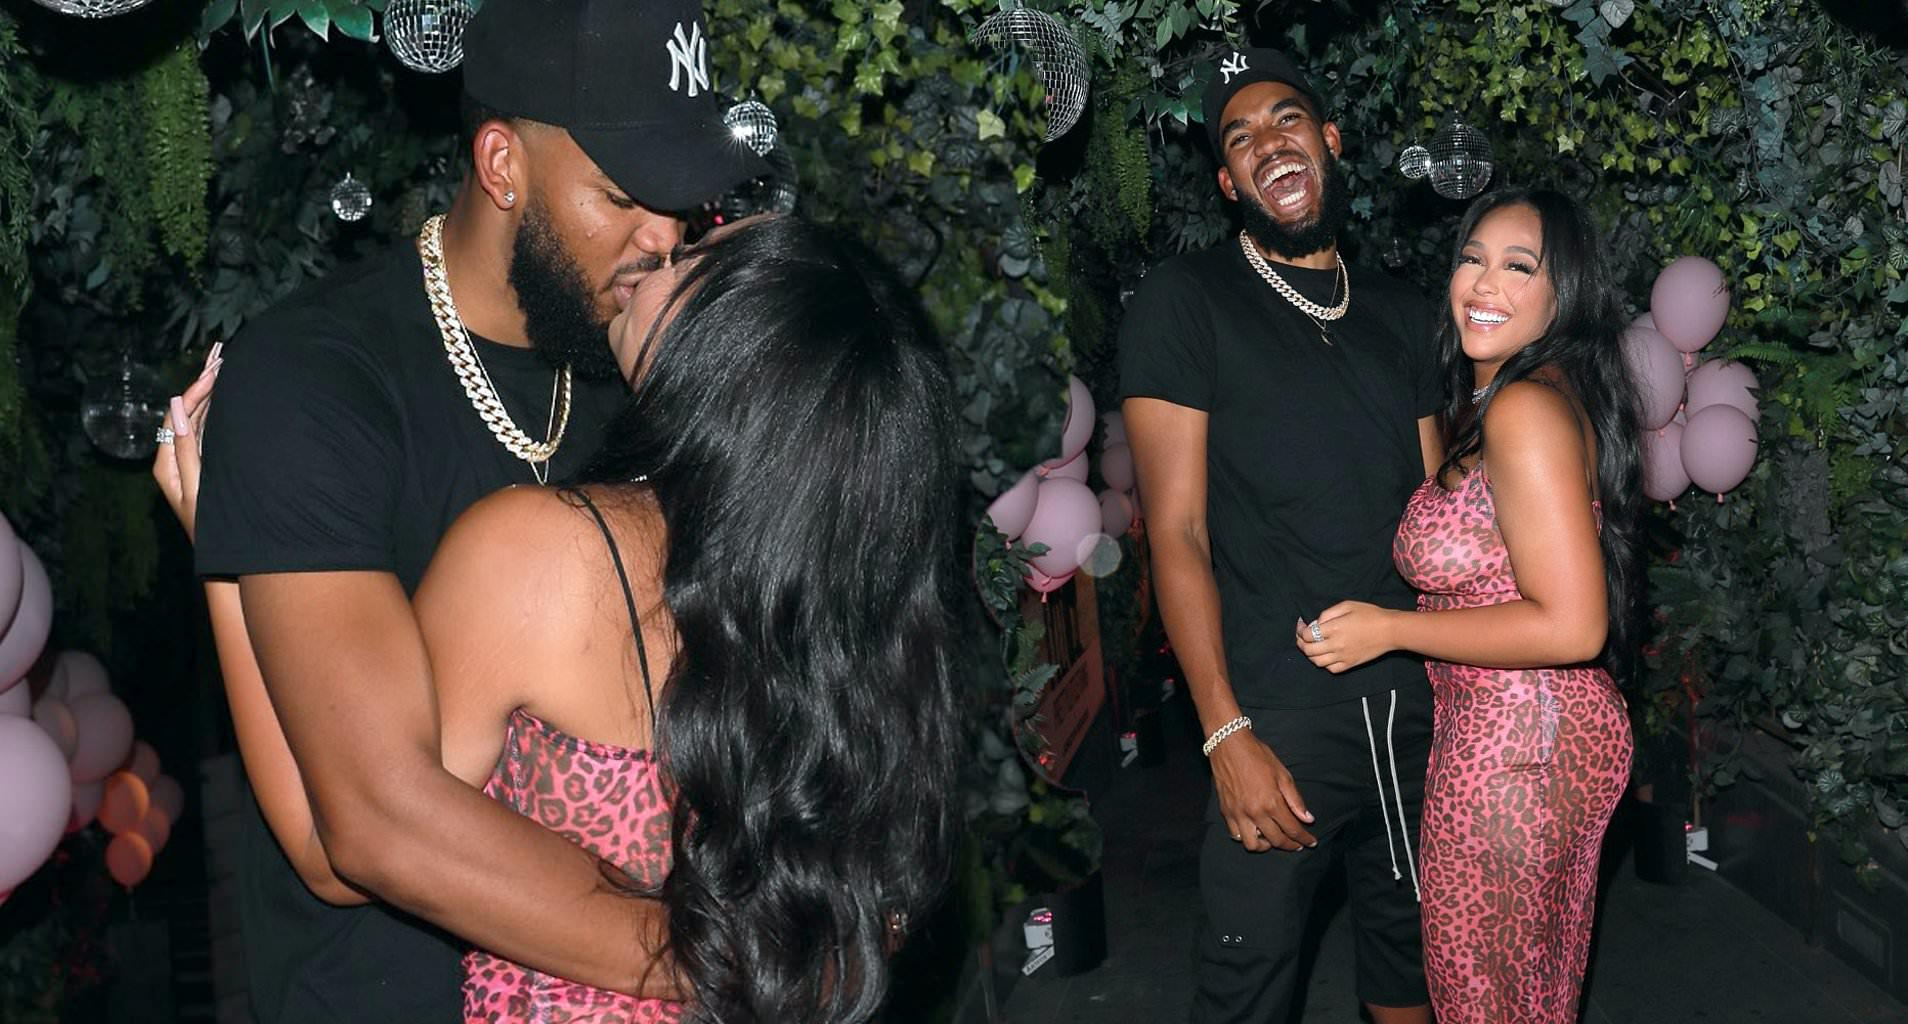 Jordyn Woods Posts A Video Featuring Her Mom And BF - Who Knows Her Better?